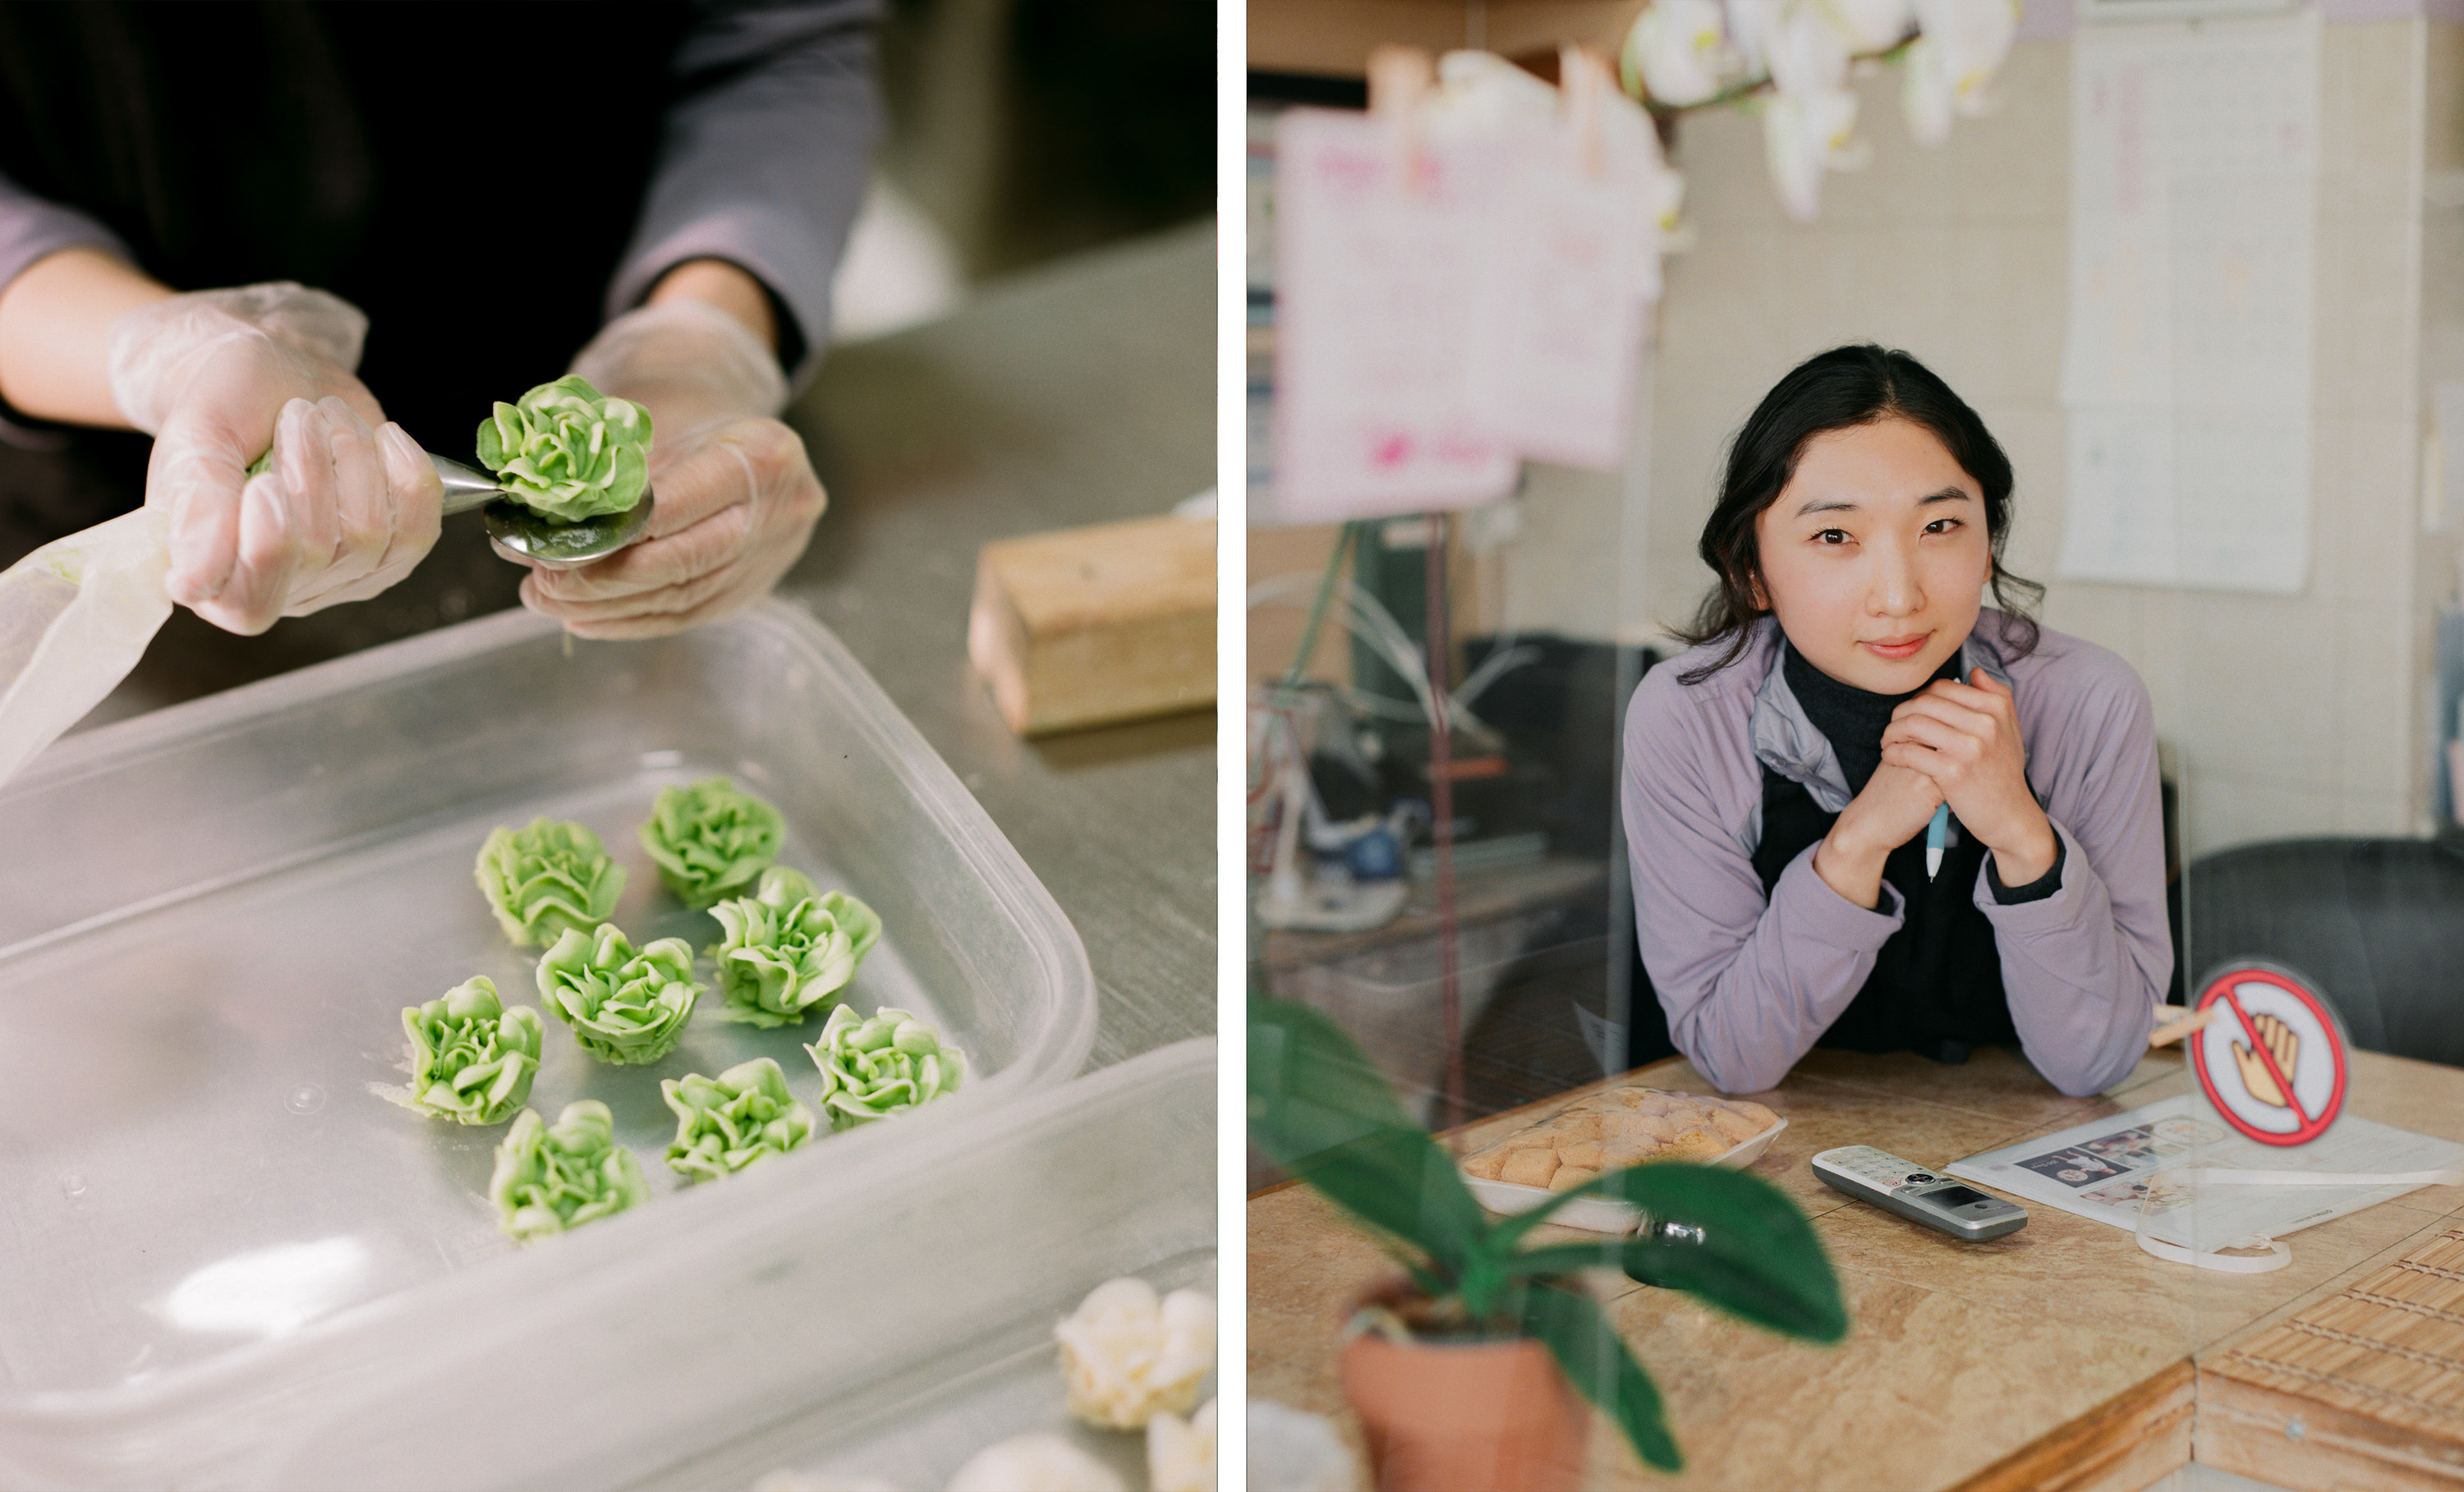 Left, small green rice cakes being placed in tupperware, right, the owner of the rice cake shop at a counter